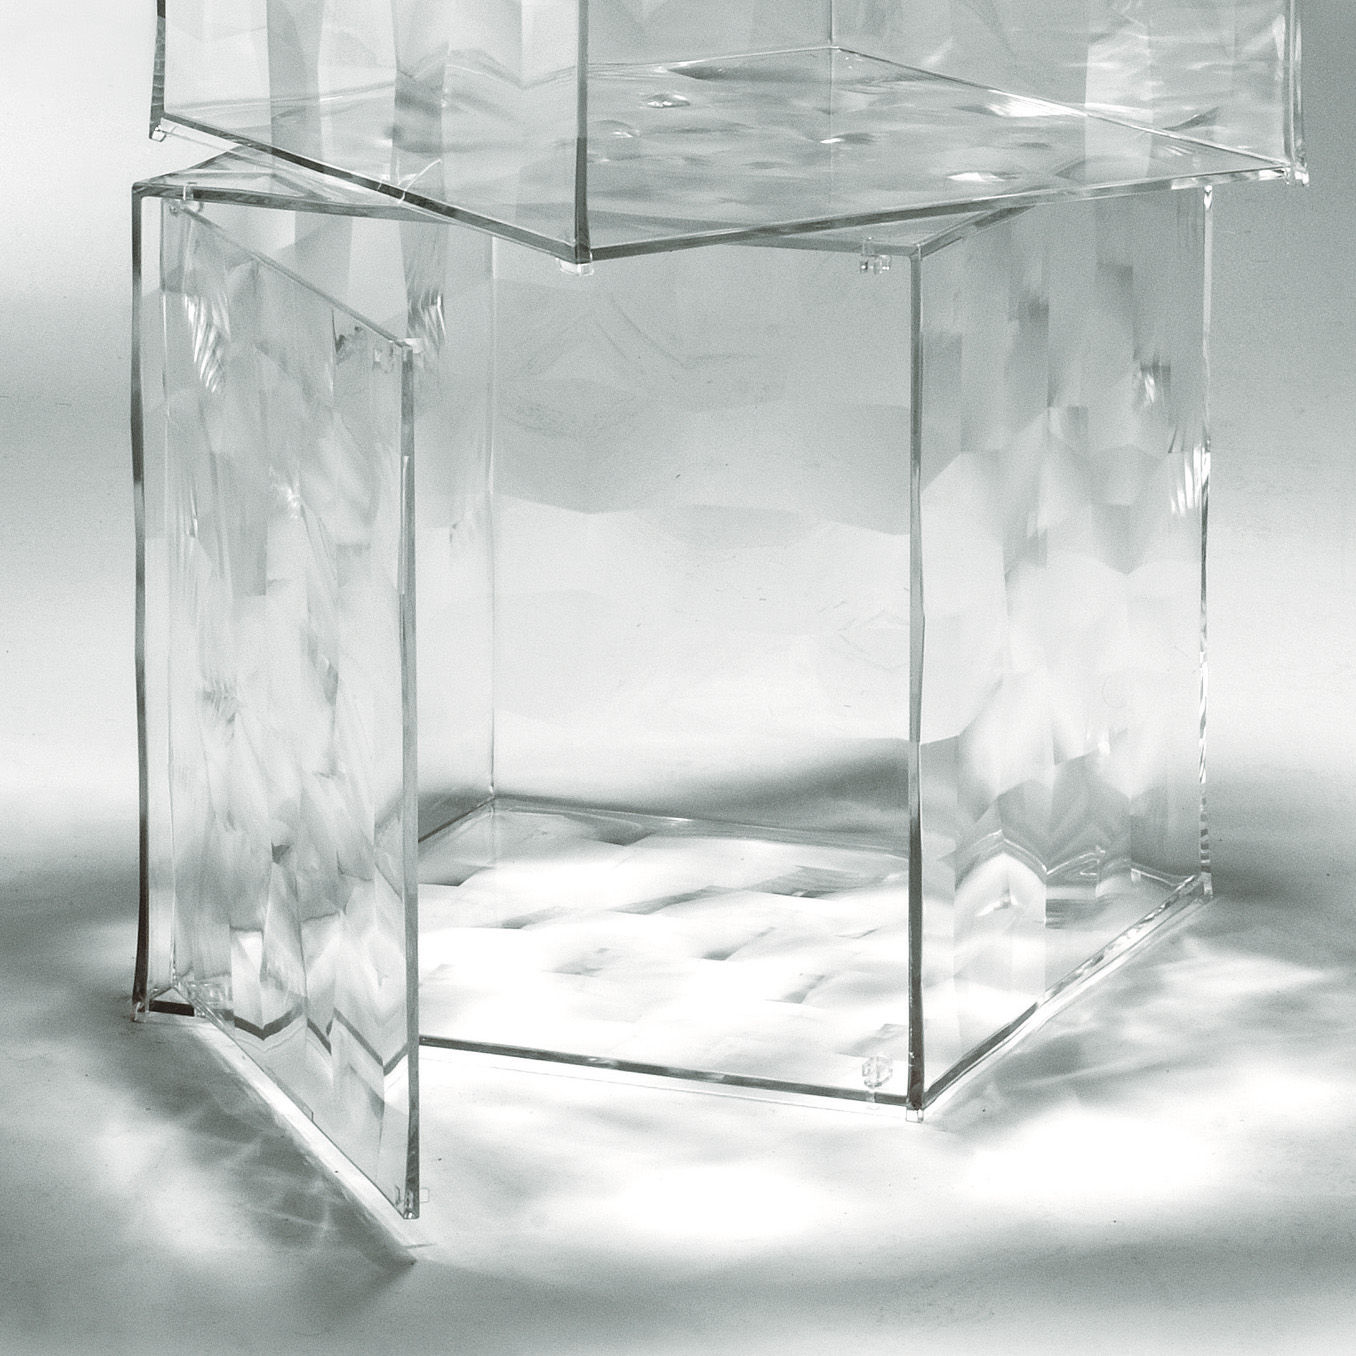 Furniture - Coffee Tables - Optic Storage - With door by Kartell - Cristal - PMMA